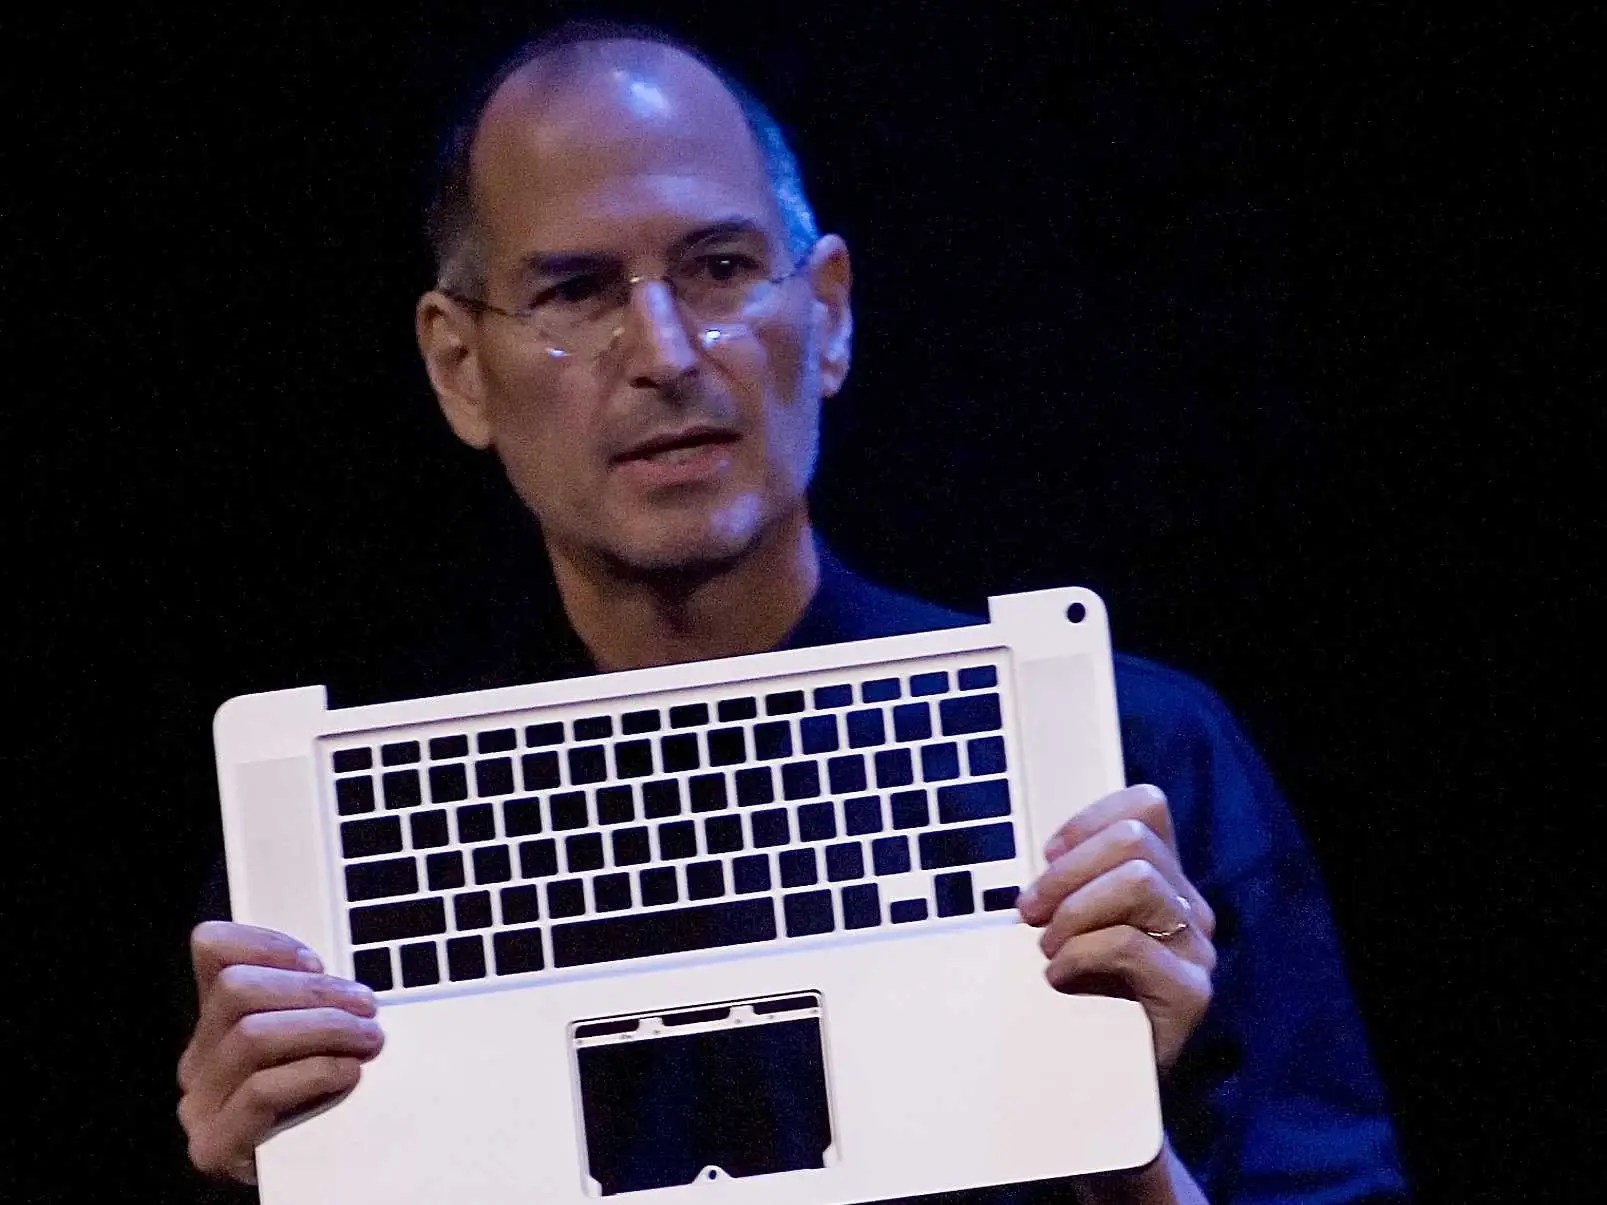 Steve Jobs was also an early riser, starting his days around 6:00.